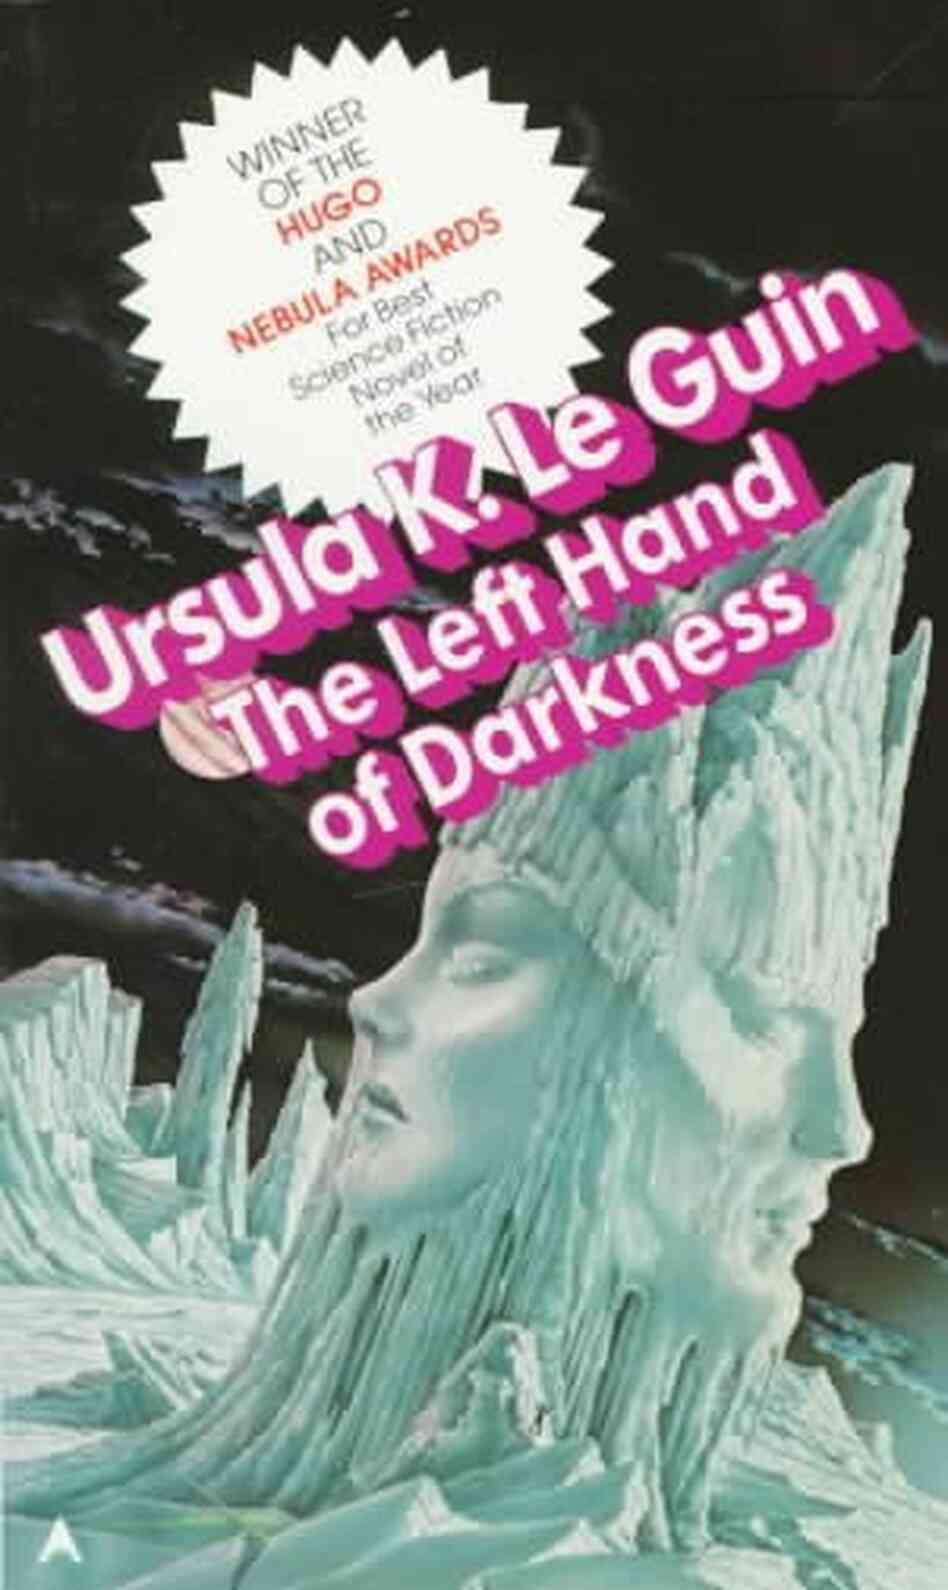 The Left Hand of Darkness by Ursula K. Le Guin (Paperback, 1969)